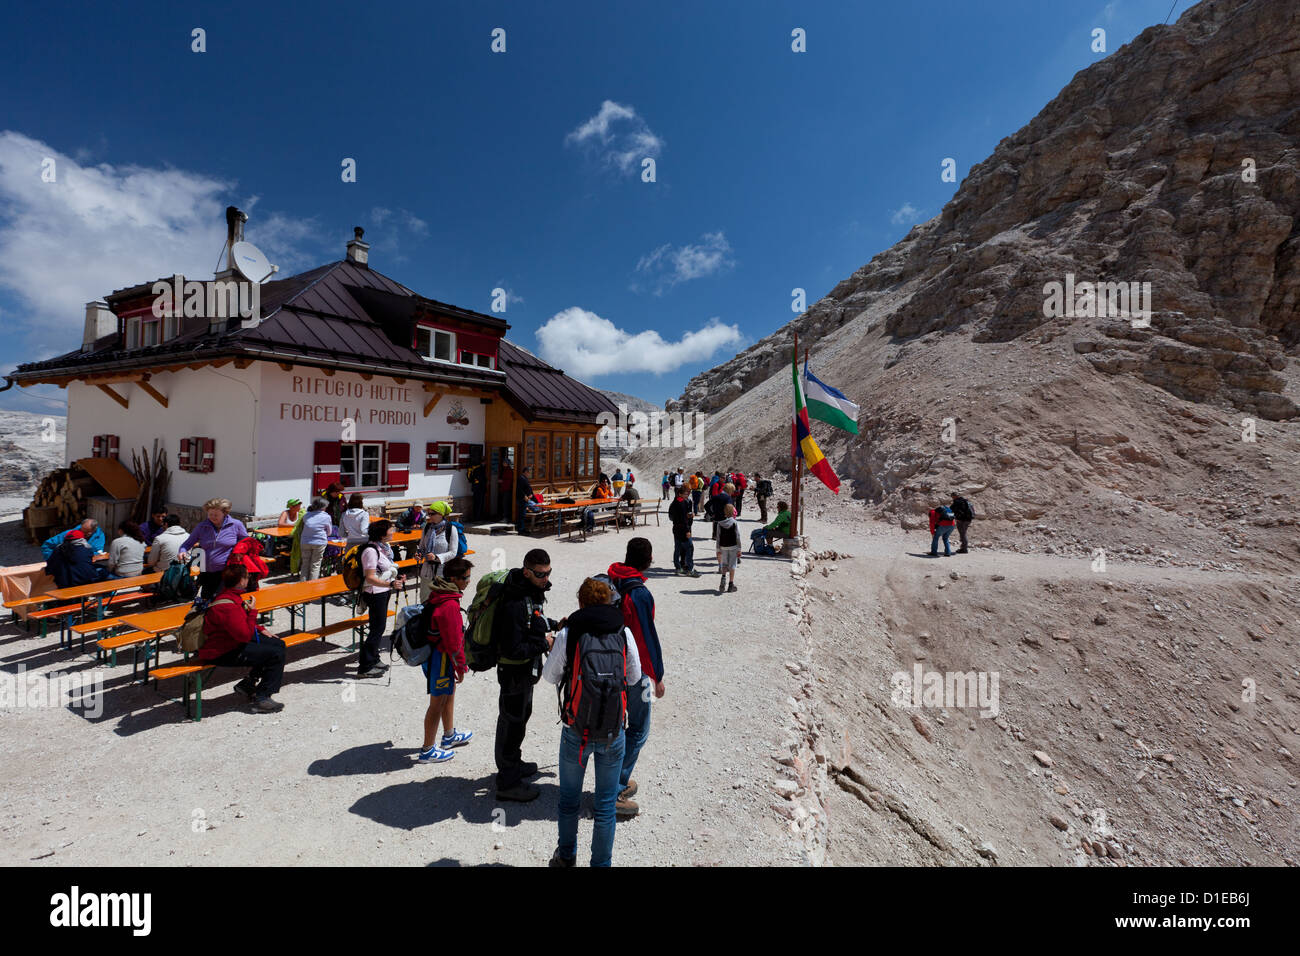 Hiking on the high route 2 in the Dolomites, Bolzano Province, Trentino-Alto Adige/South Tyrol, Italy, Europe Stock Photo